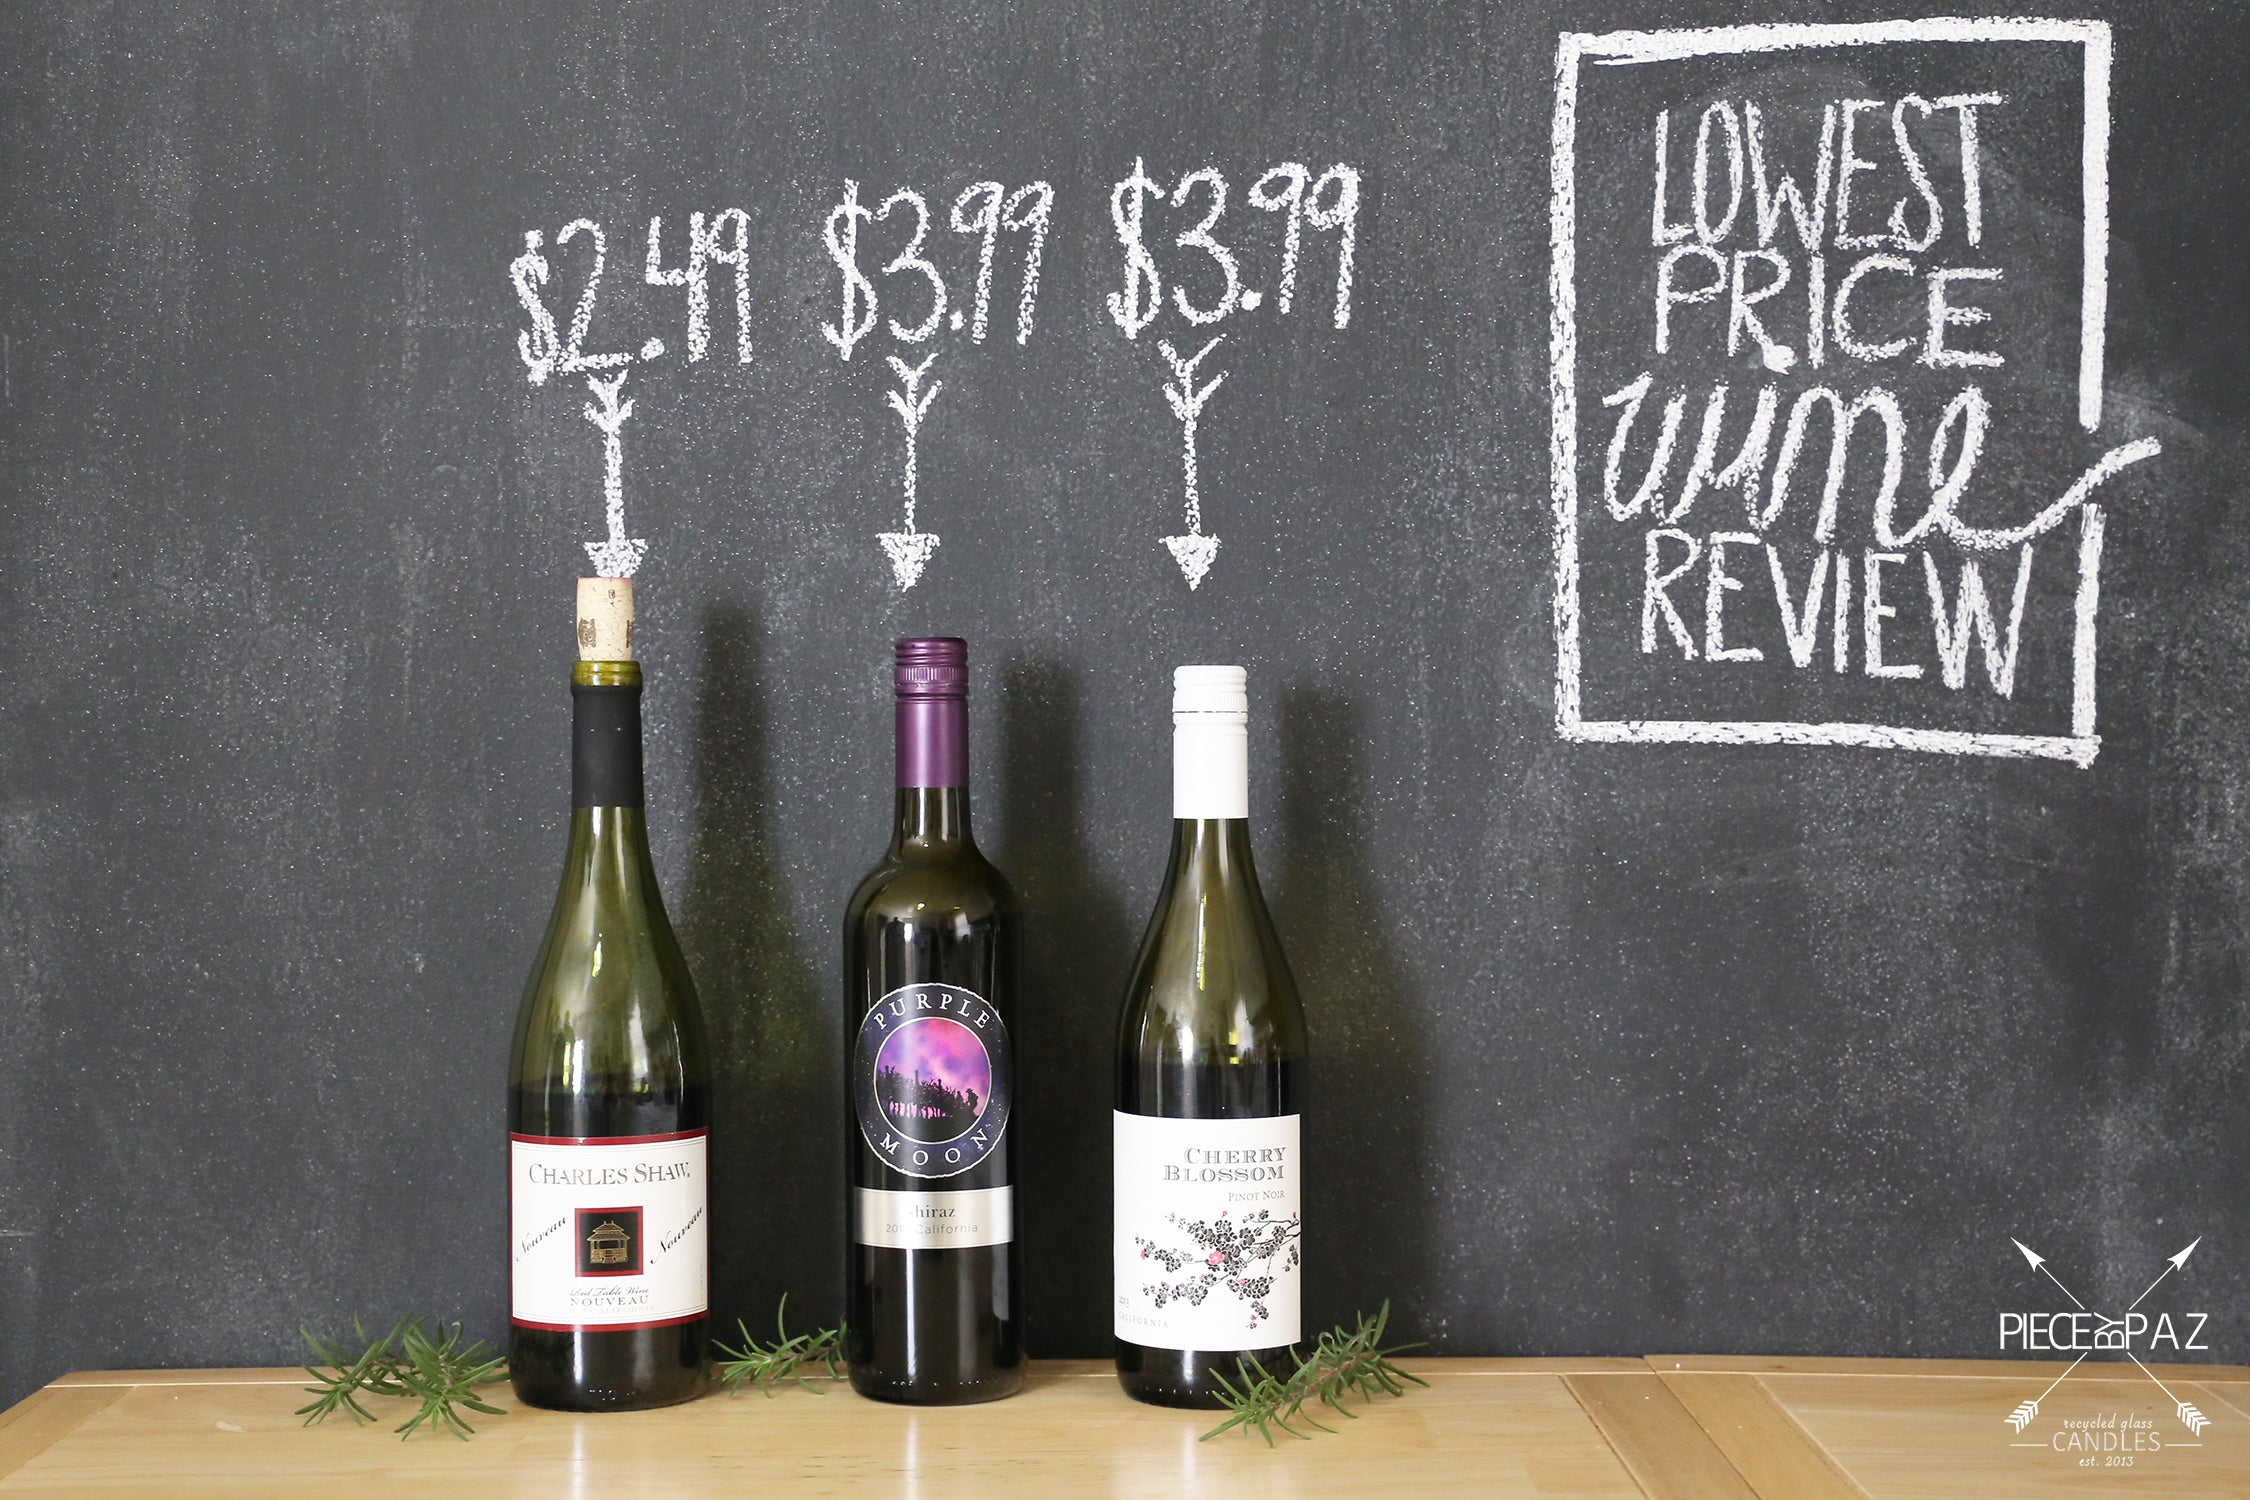 Trader Joe's 3 least expensive, cheapest red wines